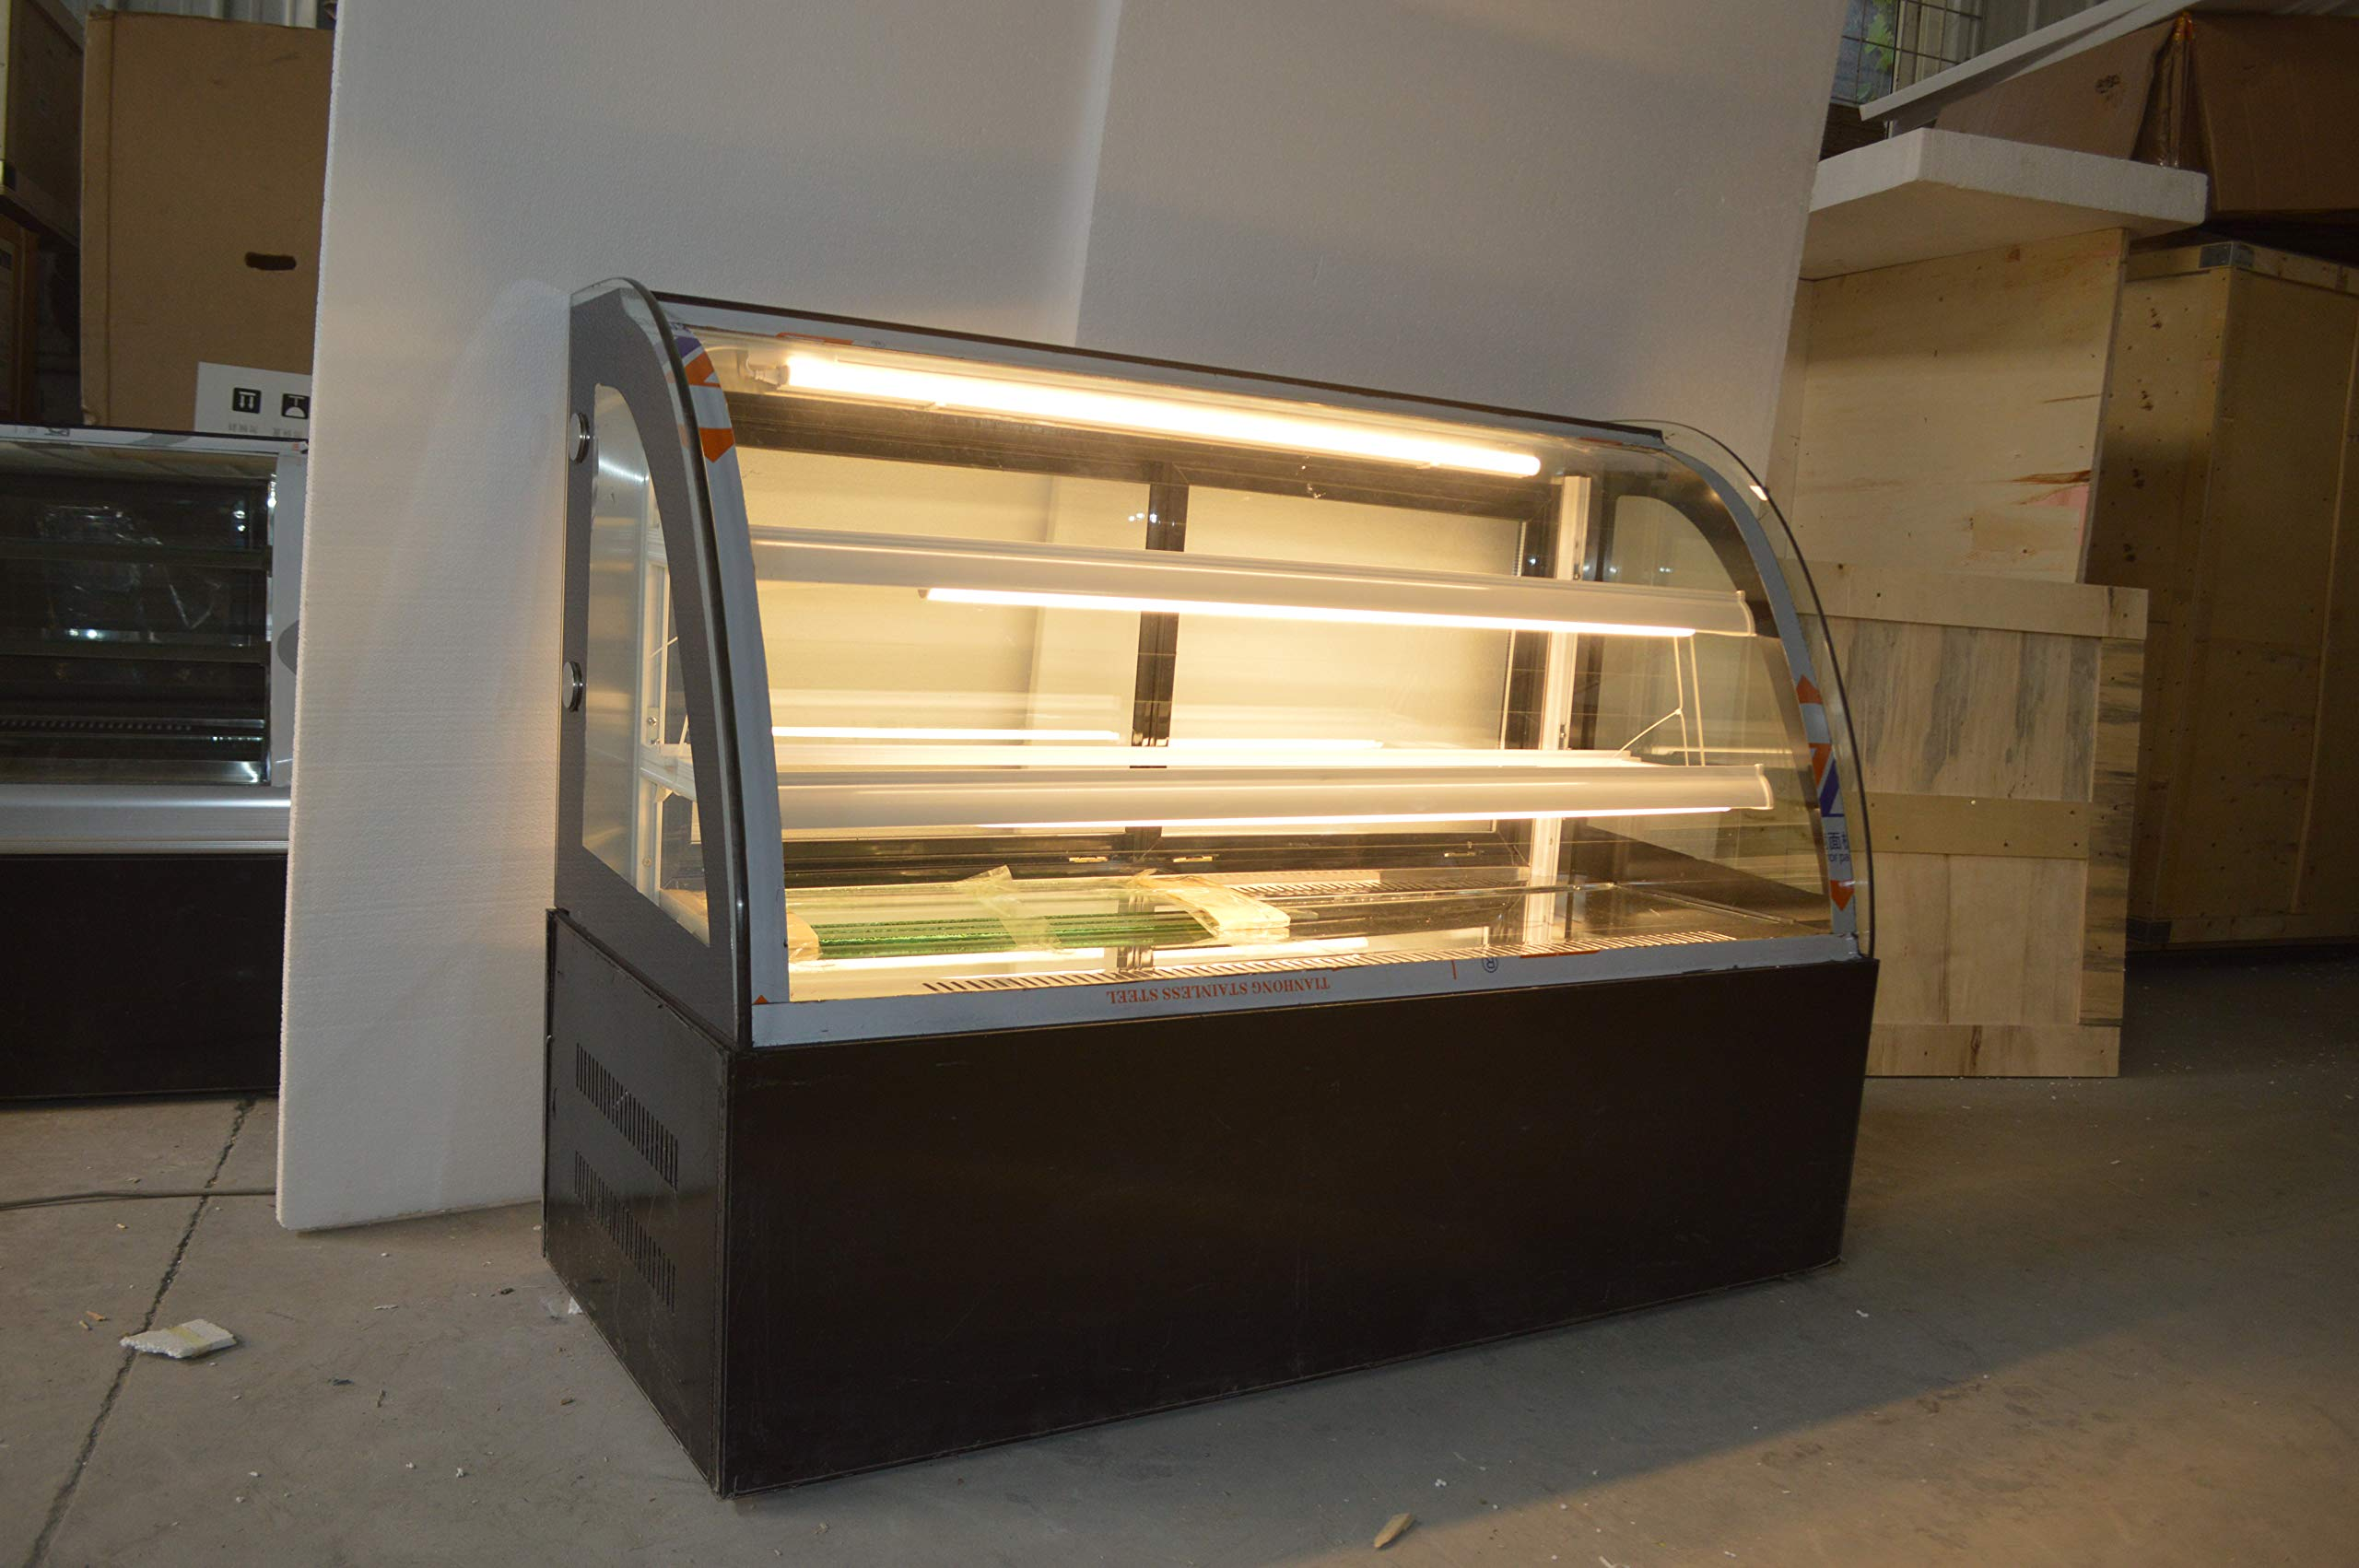 INTBUYING 47'' Countertop Bekery Cabinet Display Case Glass Refrigerated Cake Showcase 220V 315W 36-46F by INTBUYING (Image #5)